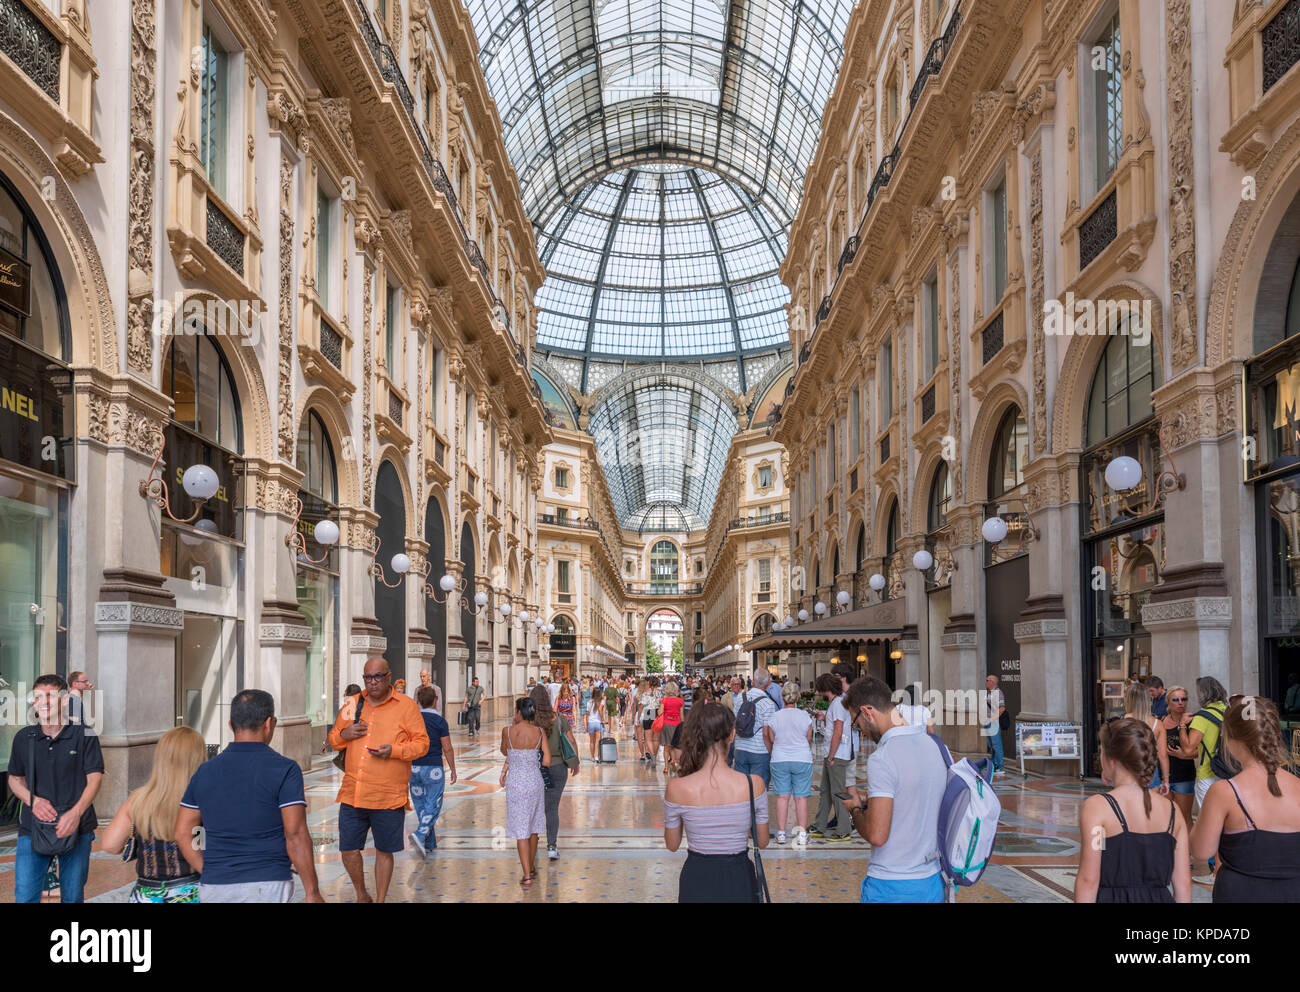 Shops in Galleria Vittorio Emanuele II, an historic shopping mall in the city centre, Milan, Lombardy, Italy - Stock Image